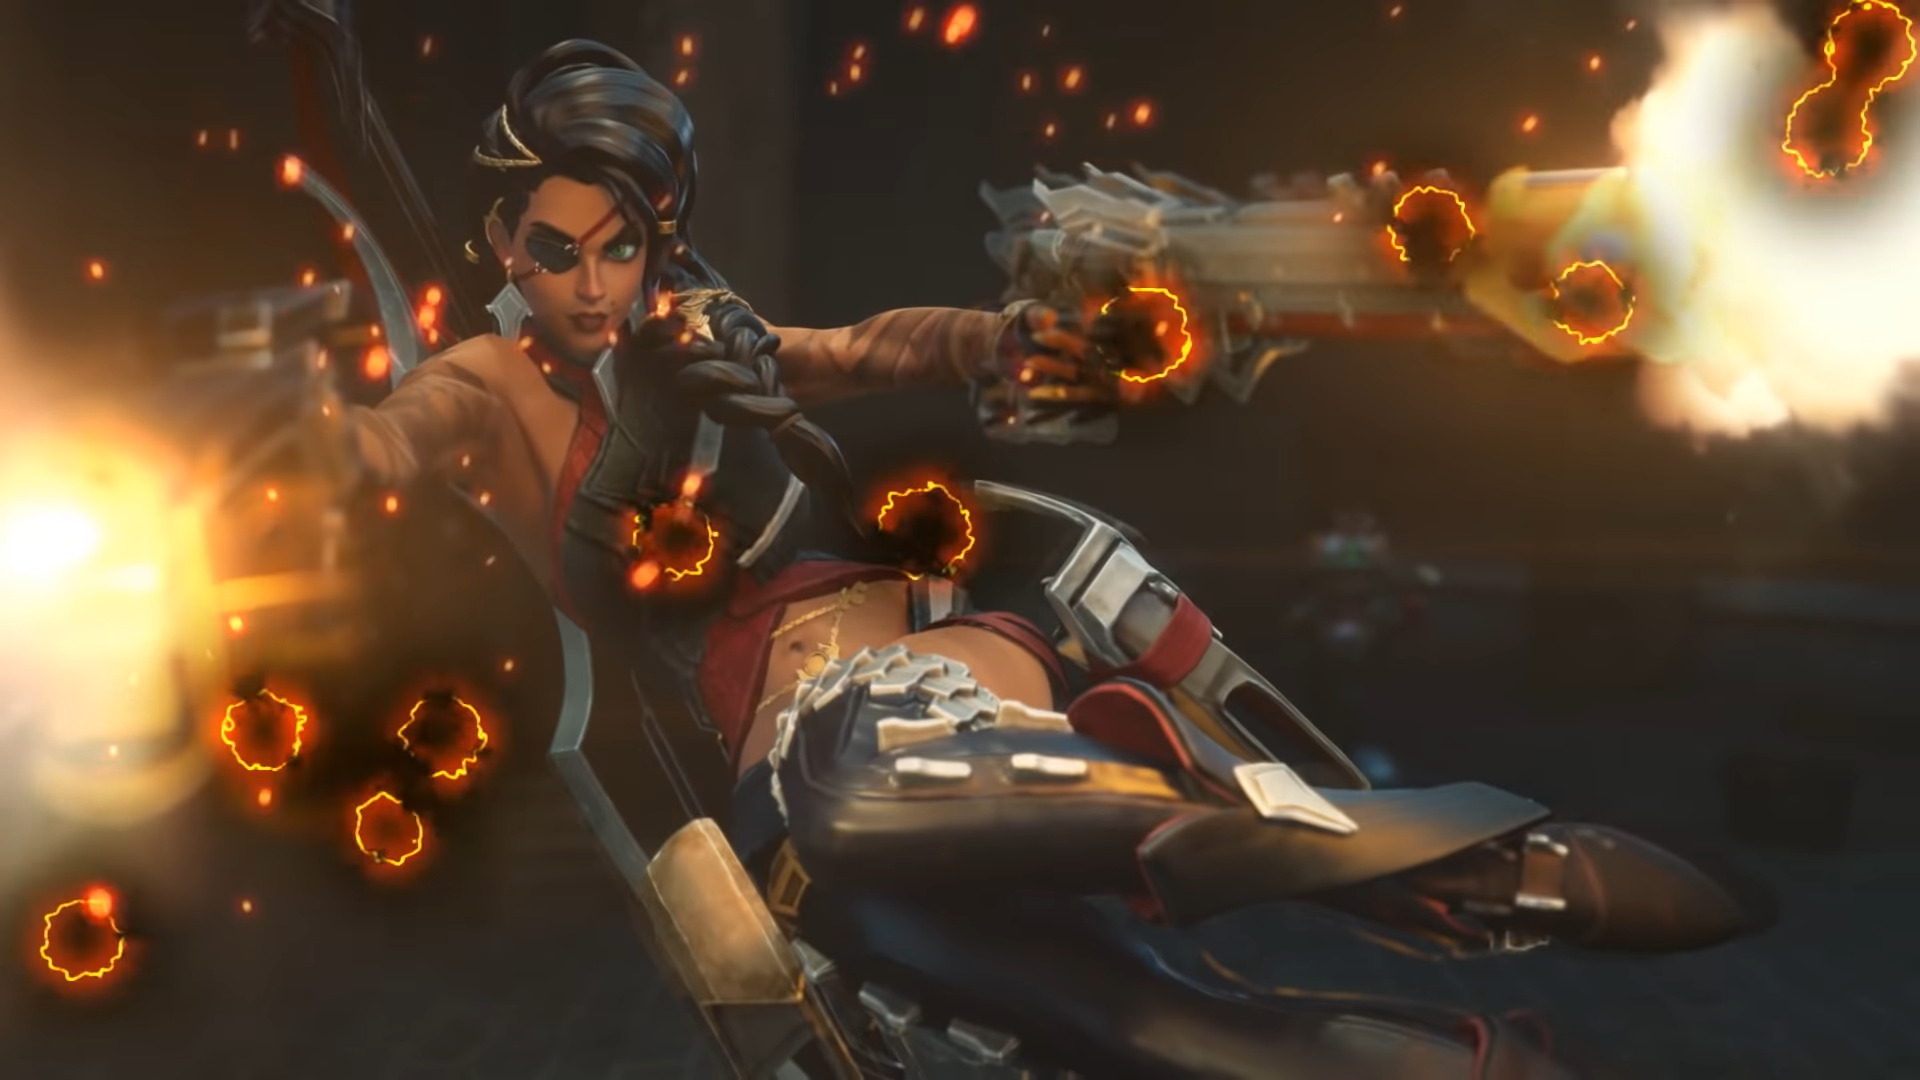 Riot Games Announces League Of Legends' Newest Champion, Samira, In A Trailer Video